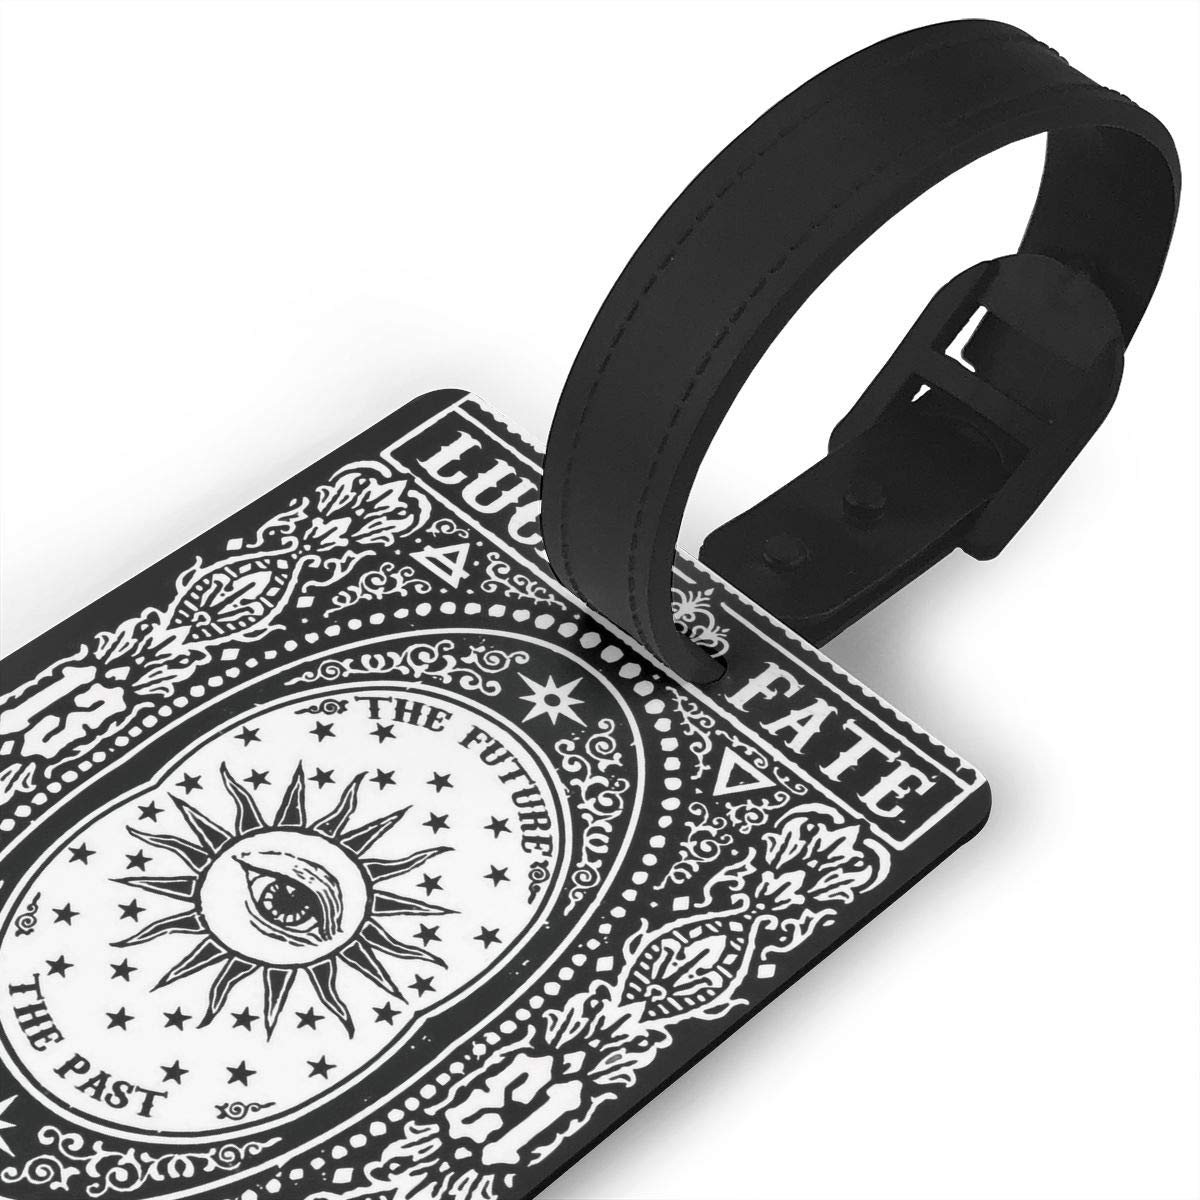 2 Pack Luggage Tags Tarot Card Travel Tags For Travel Tags Accessories